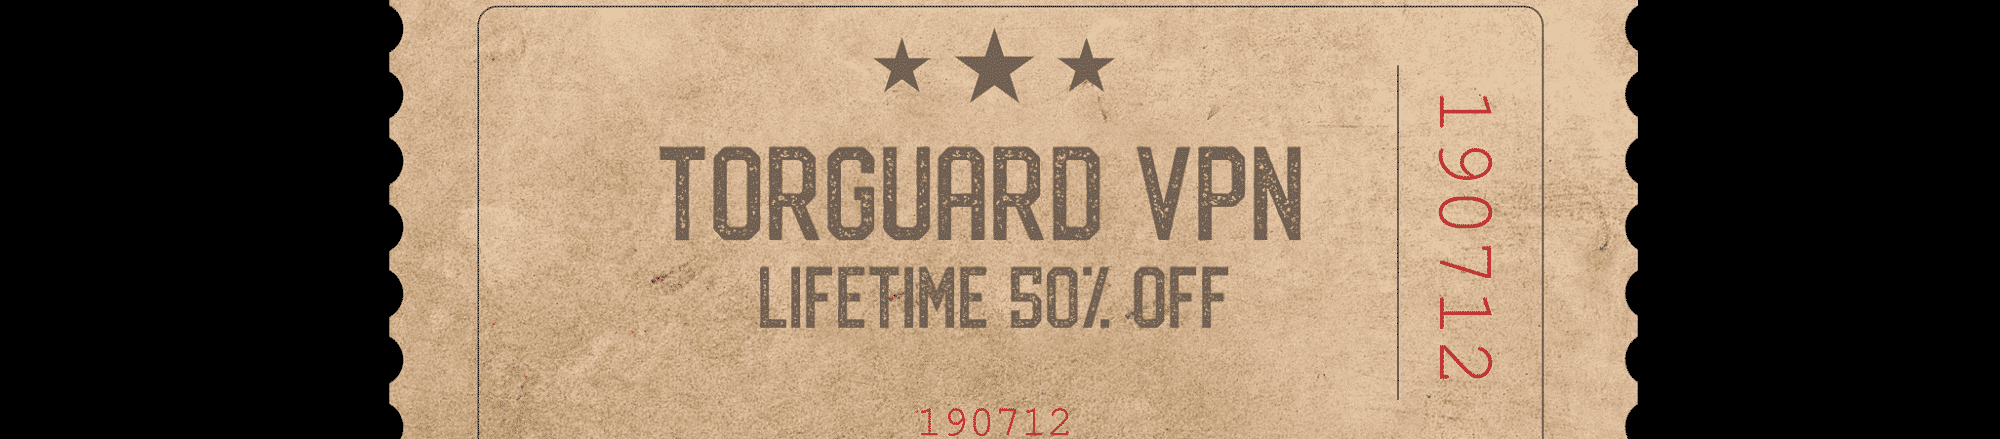 Get 50% off TorGuard for Life with Our Coupon Code